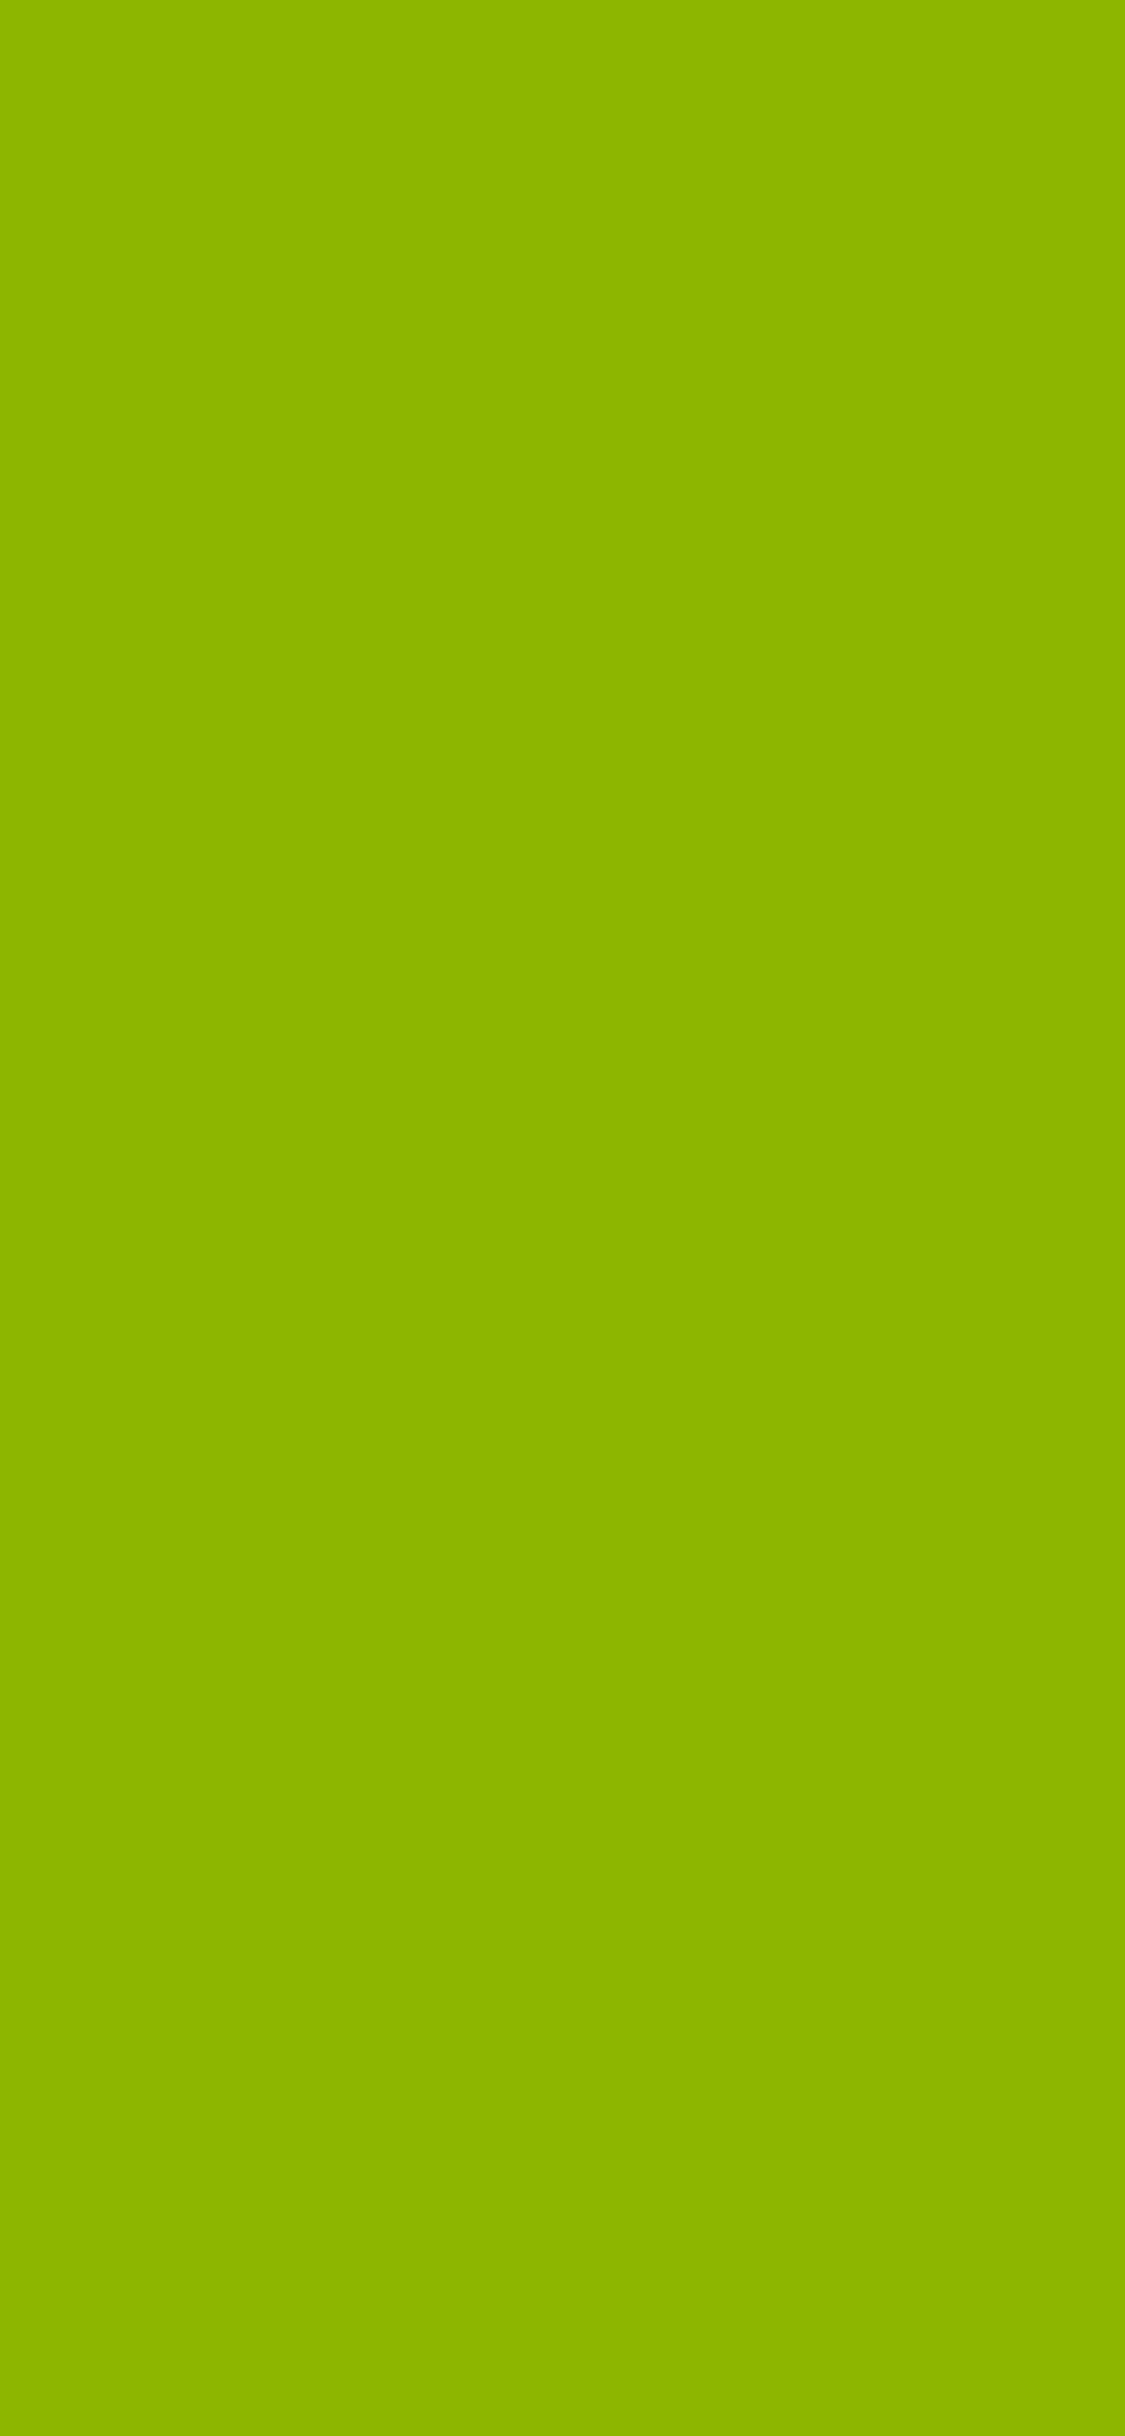 1125x2436 Apple Green Solid Color Background